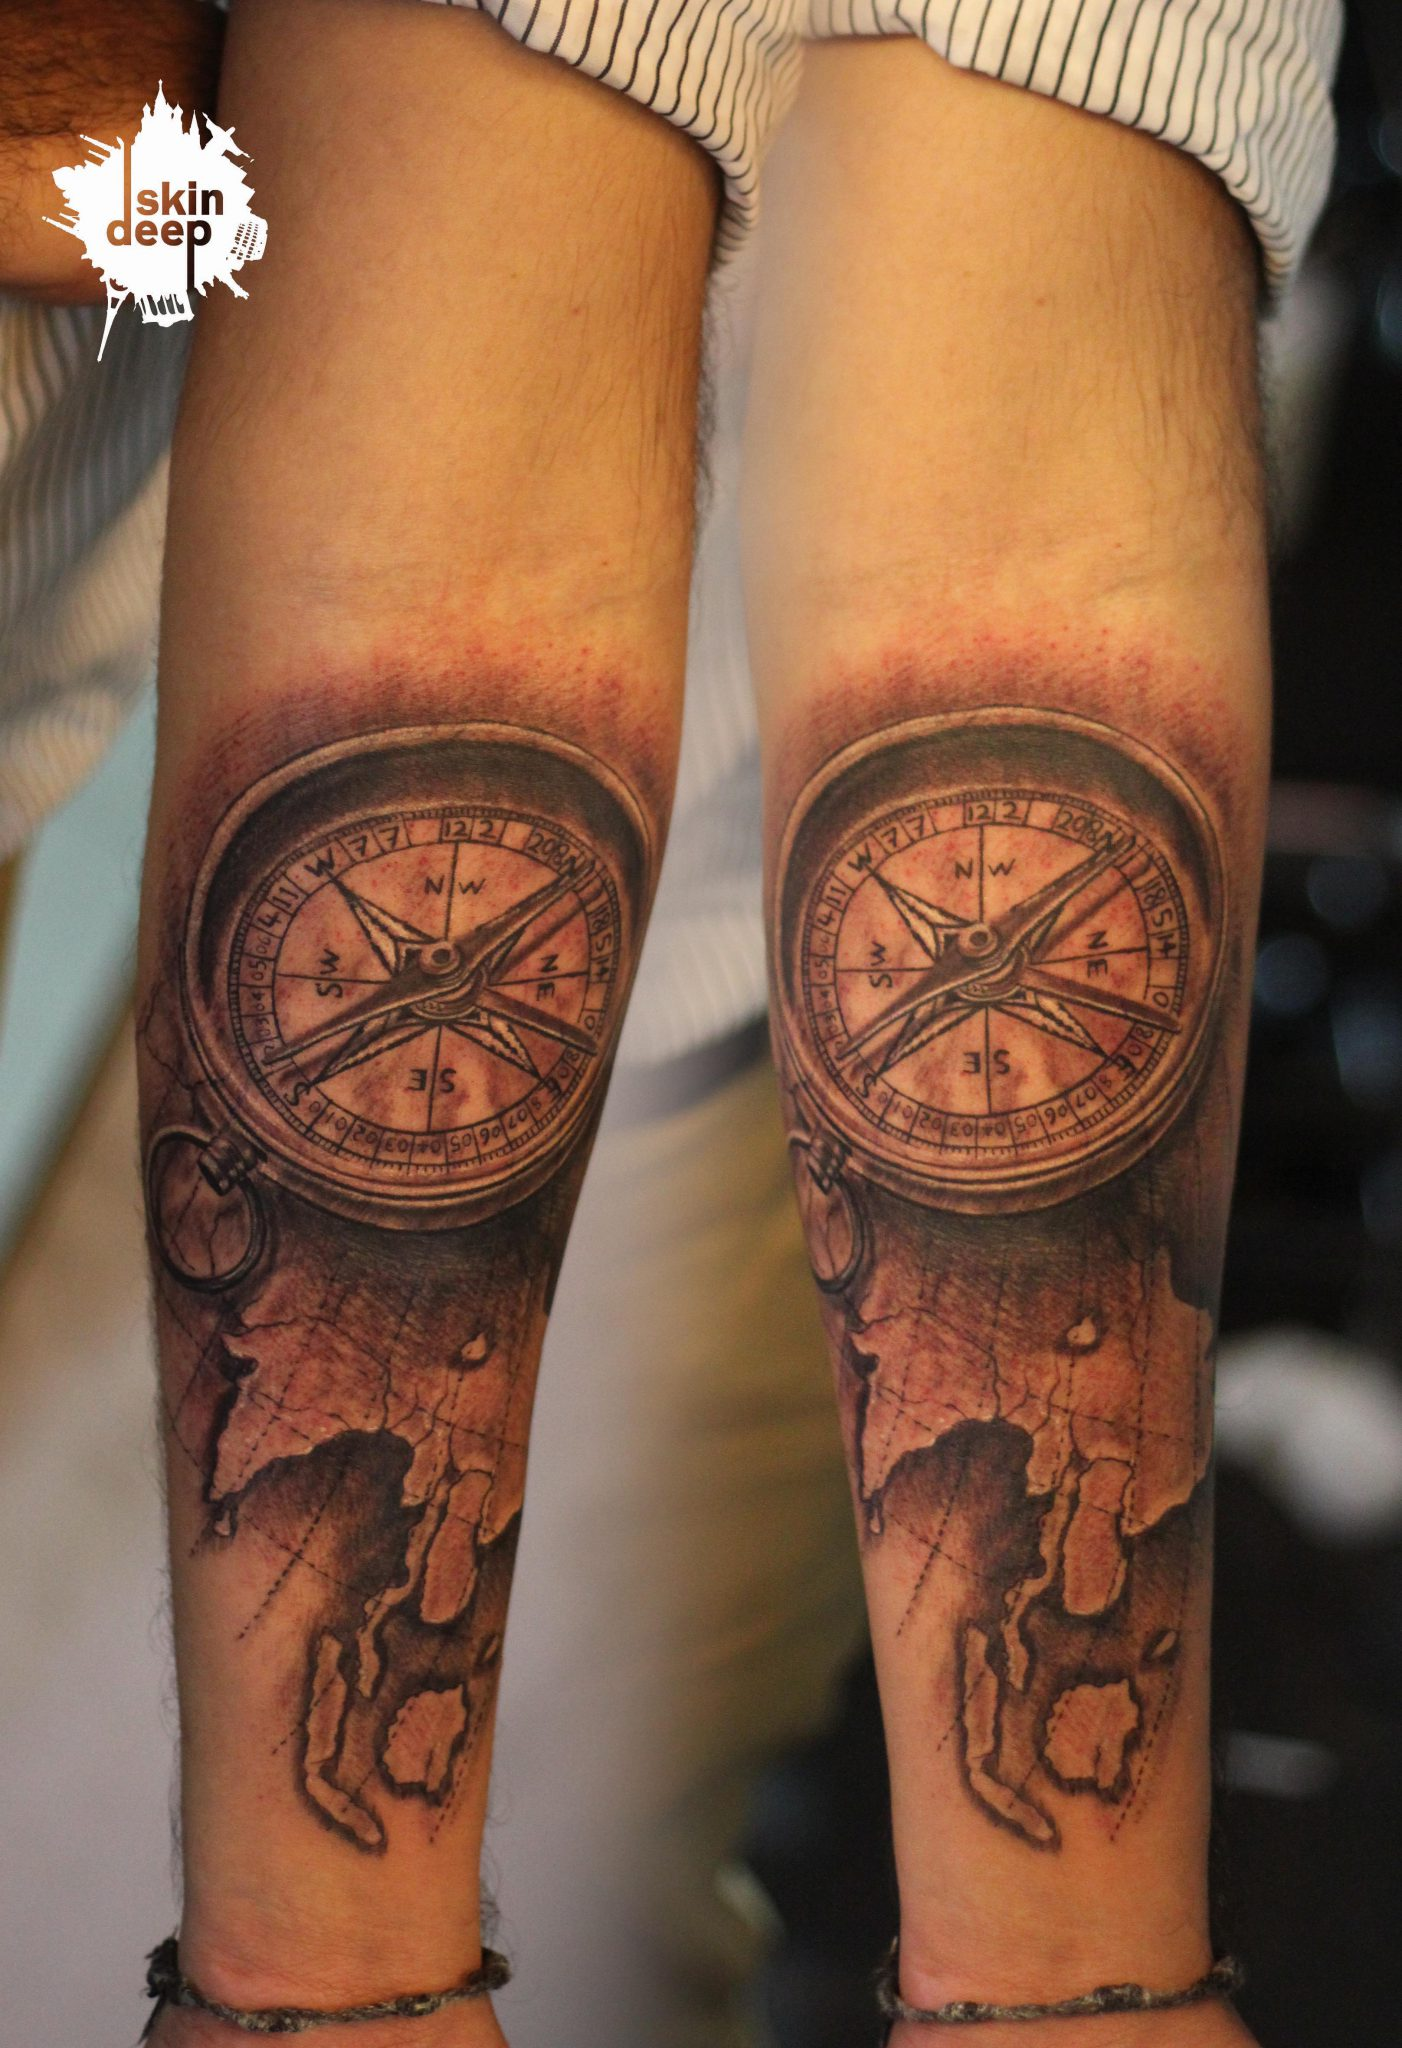 Grey Scale – Compass Tattoo